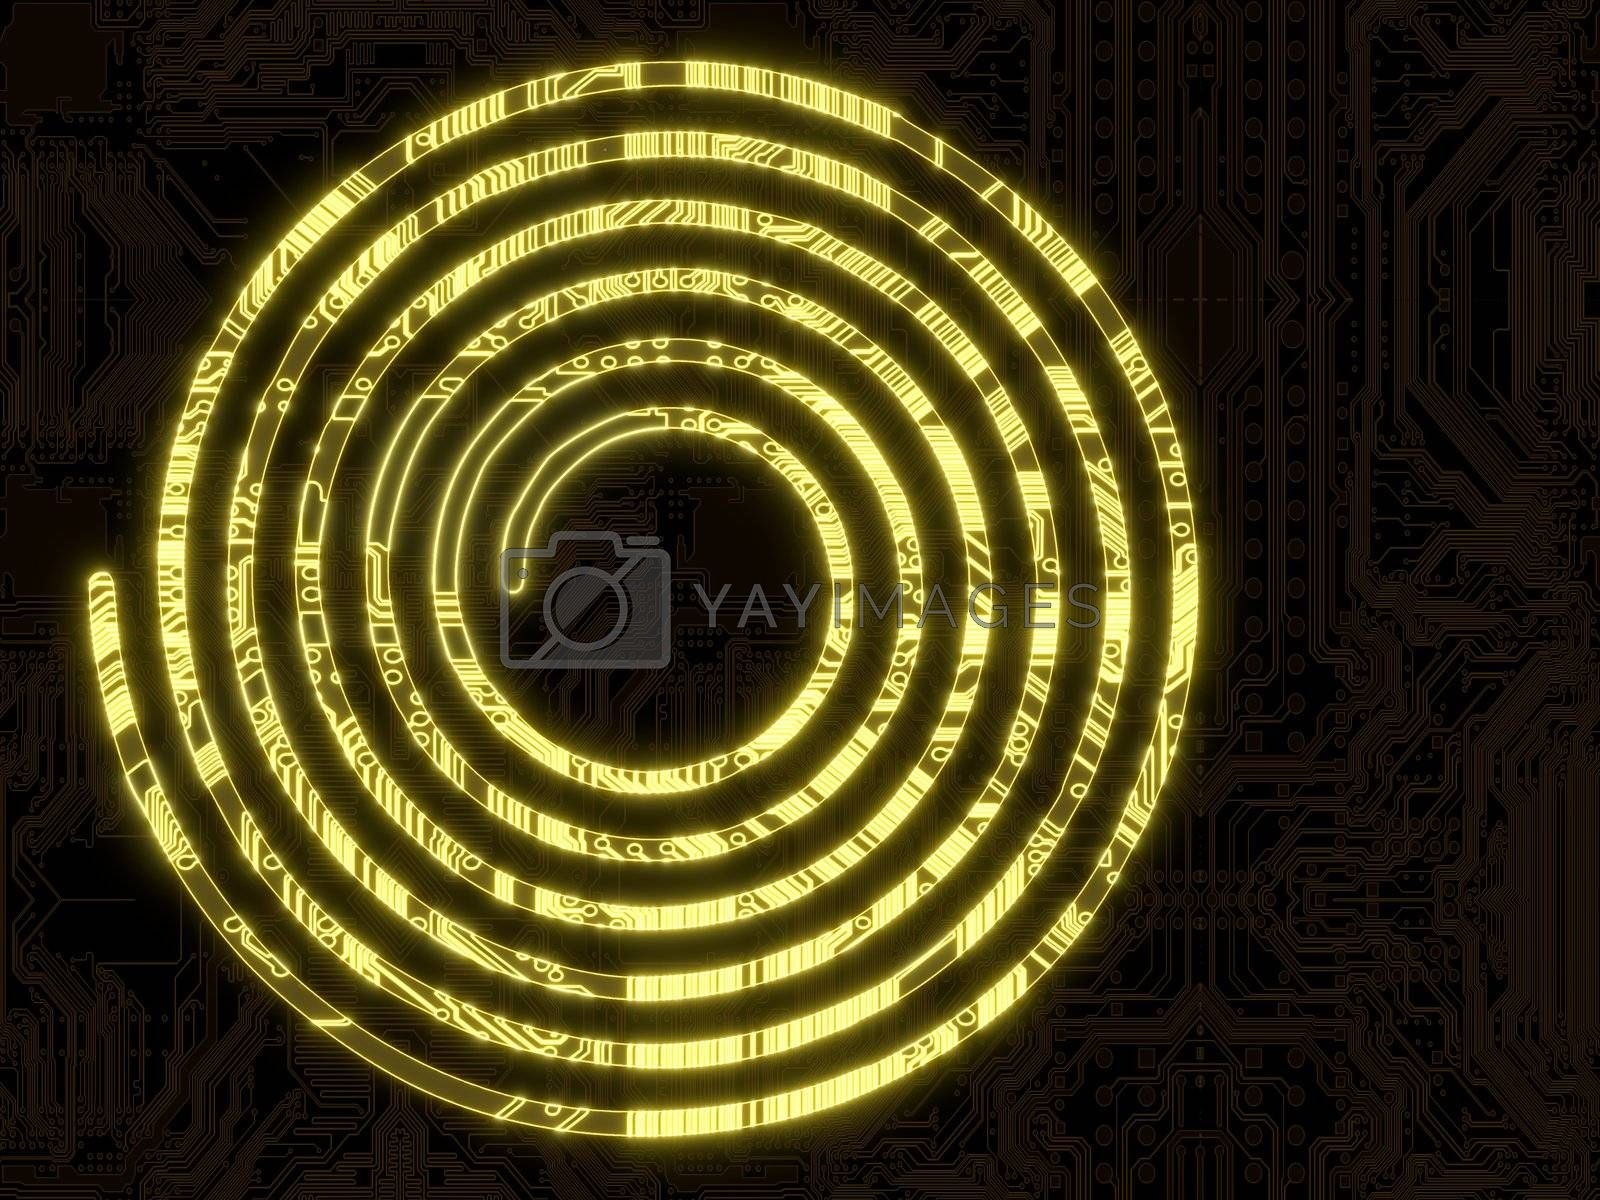 3d graphic computer chip flare with glowing helix symbol in a dark background